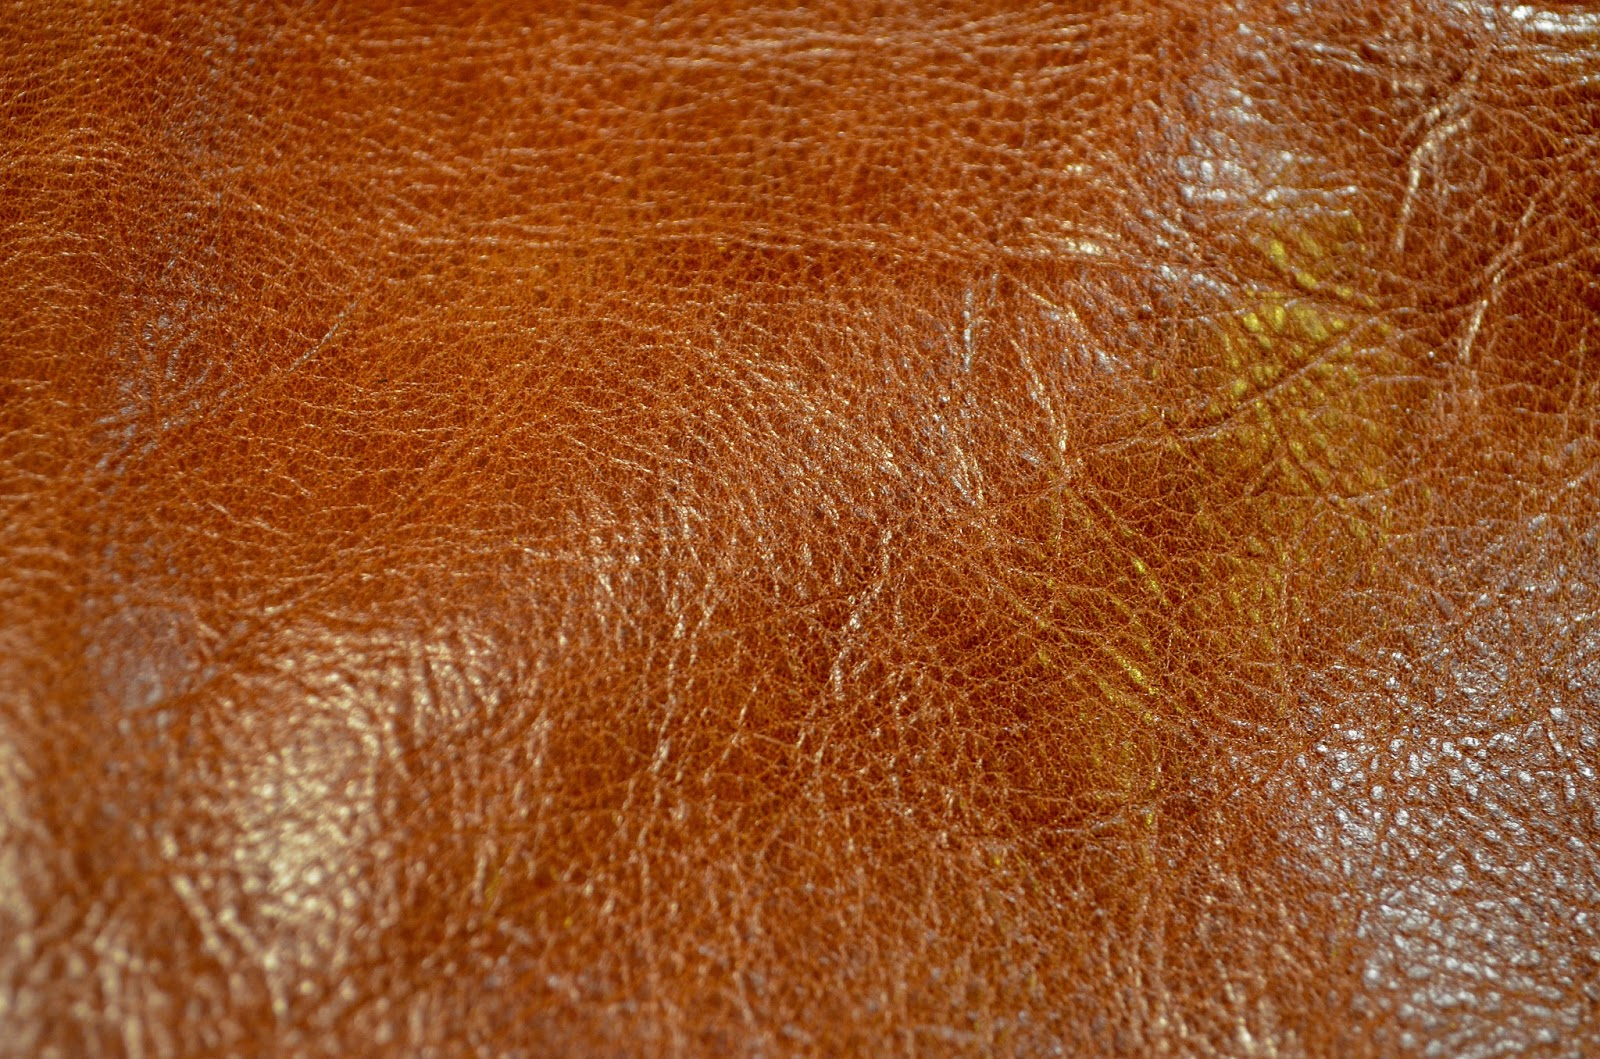 Chemical Wedding Handbags Leather Swatches Edited 4 23